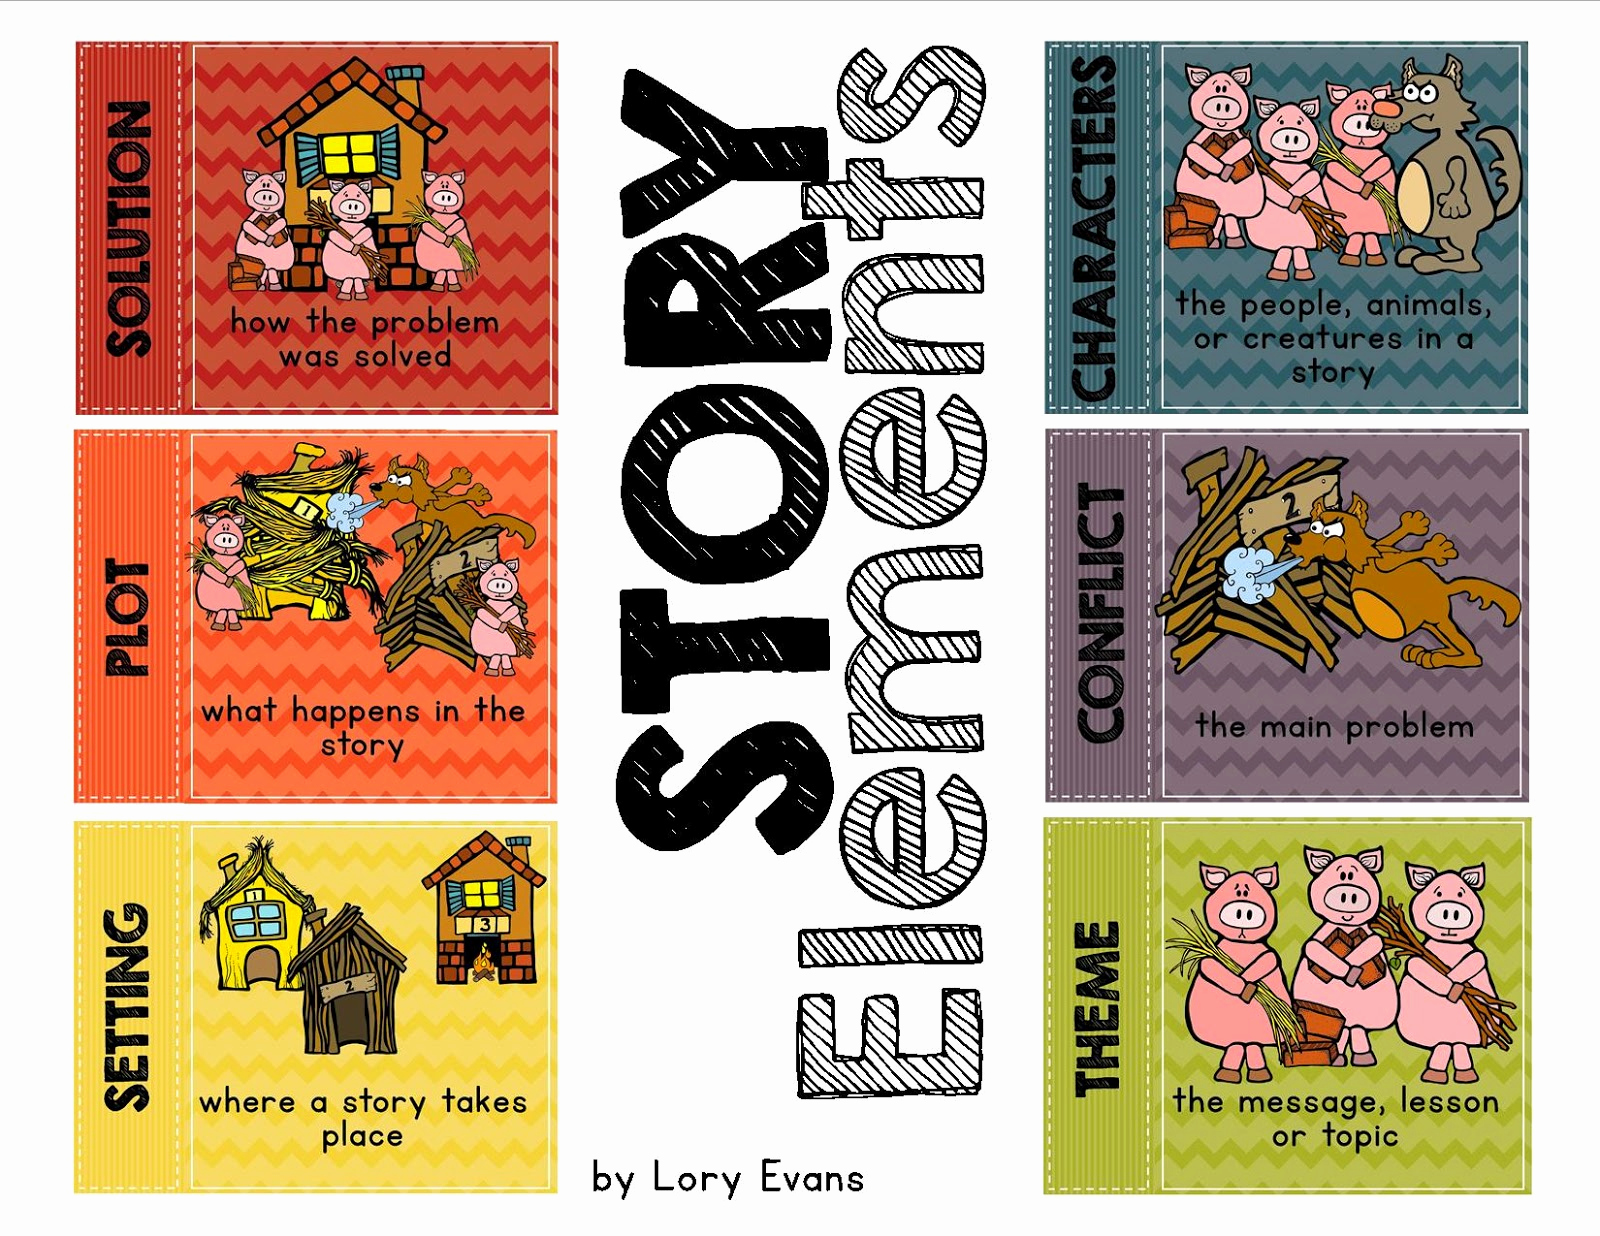 Story Elements Worksheets 2nd Grade Elegant Lory S 2nd Grade Skills Story Elements & Giveaway